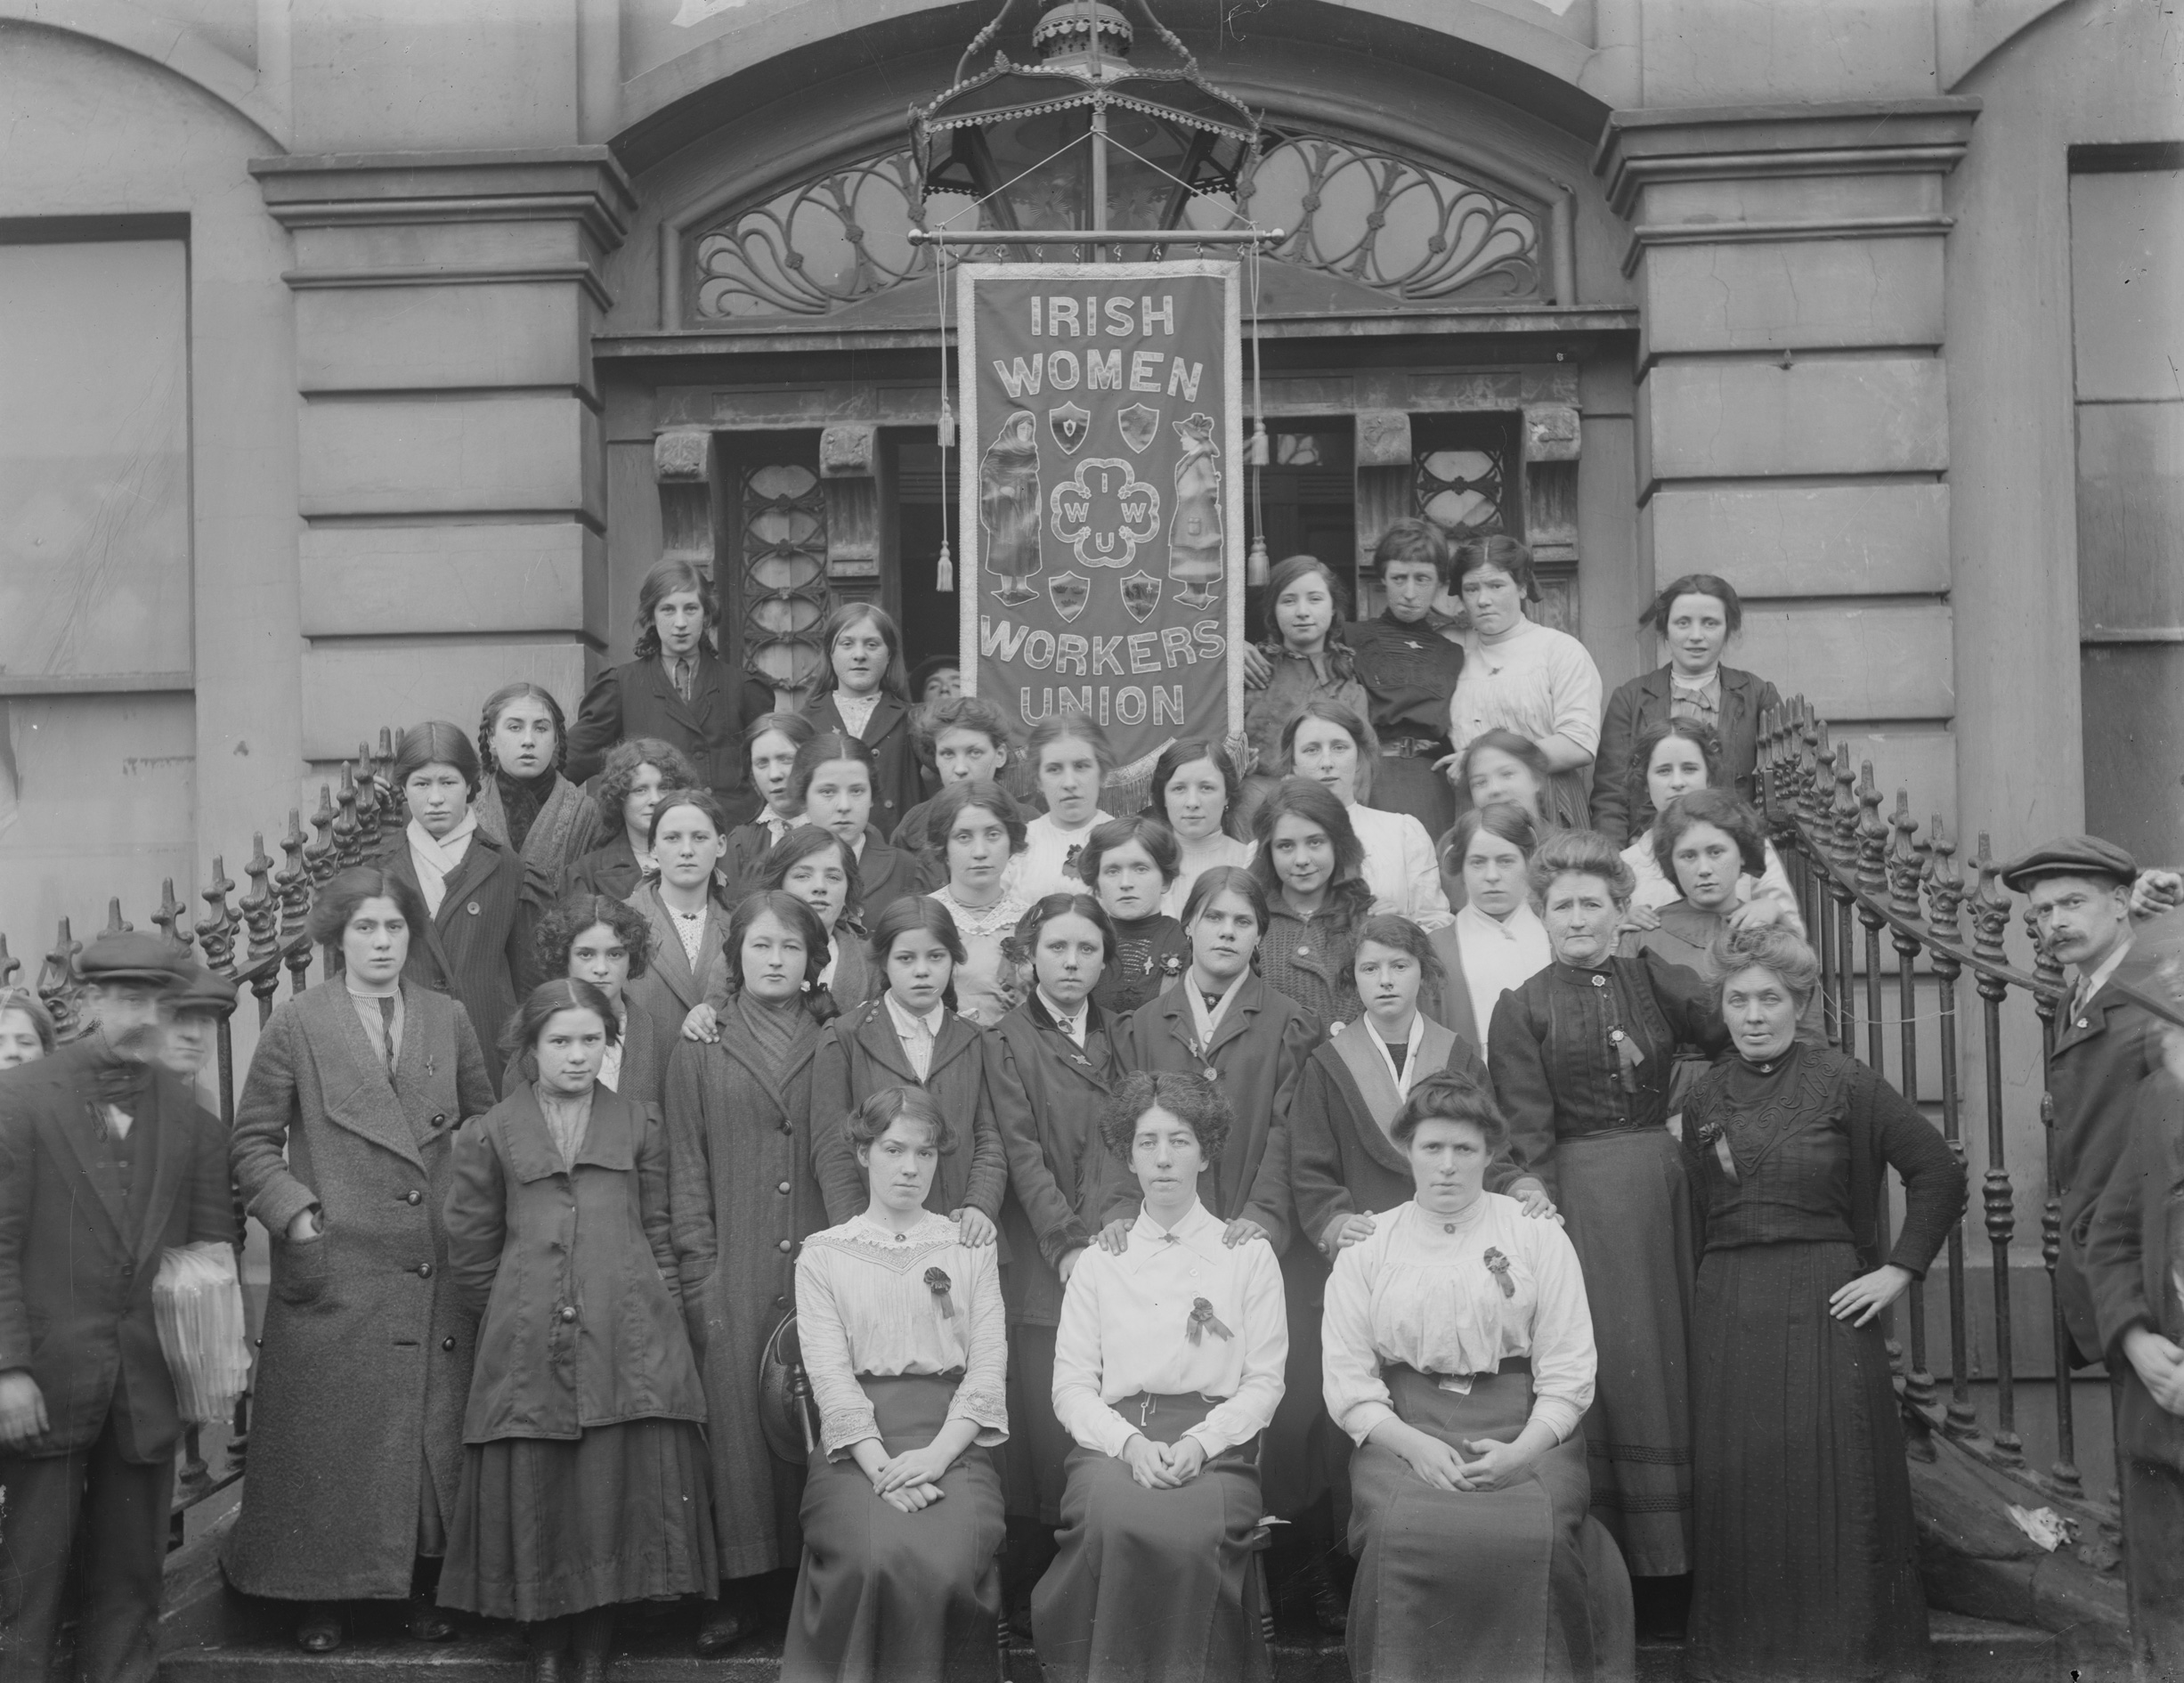 The Irish Women Workers Union at Liberty Hall